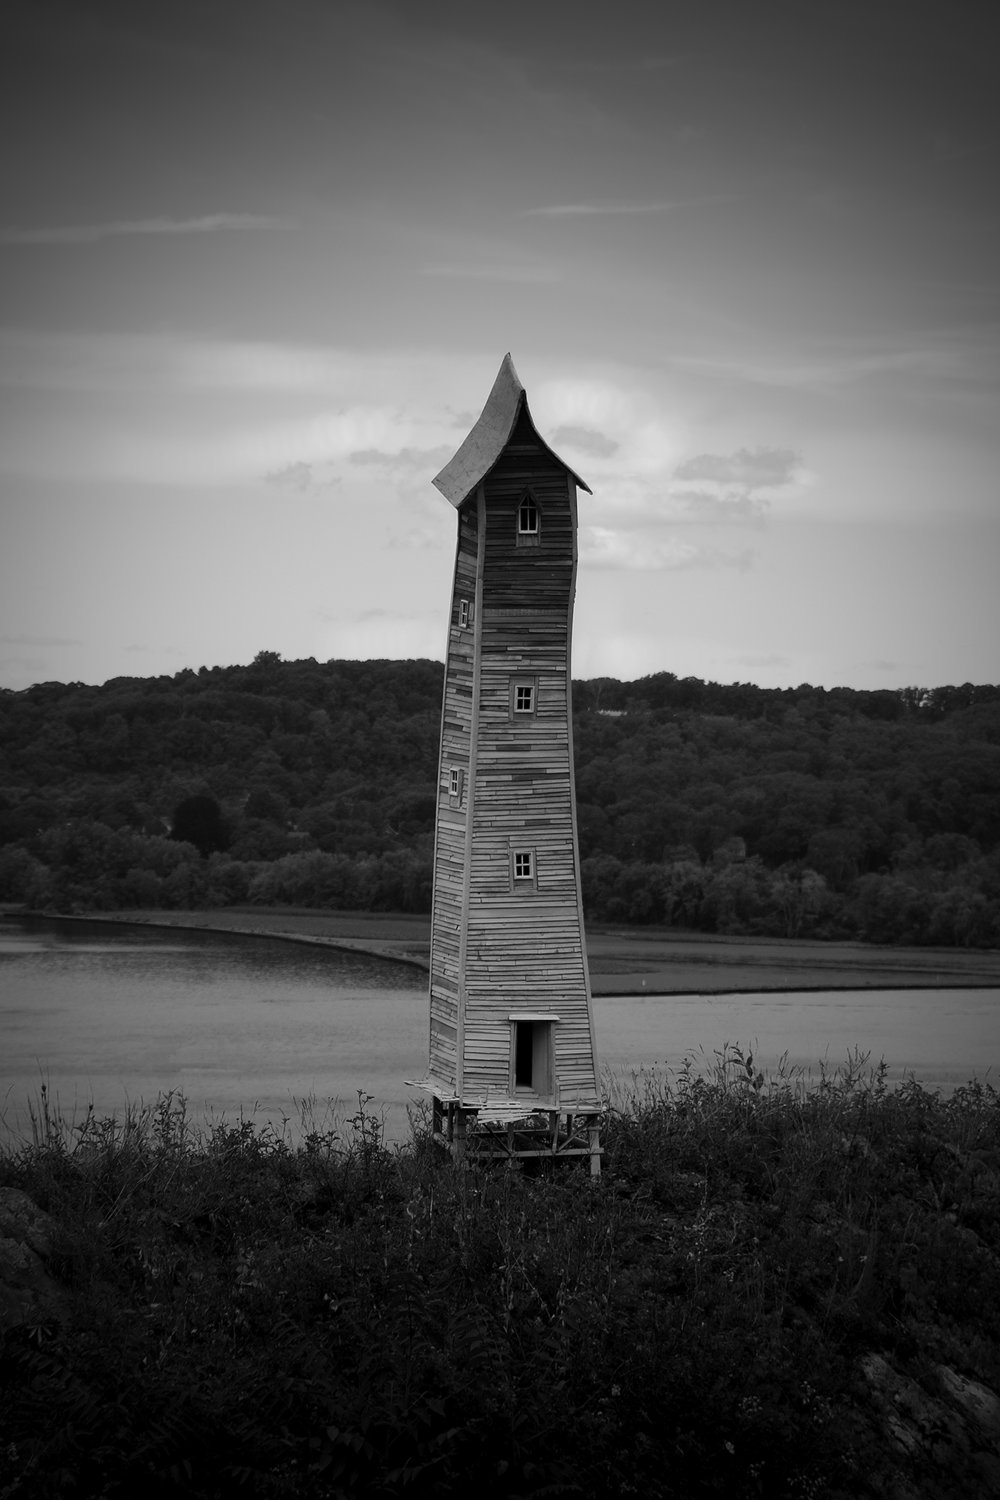 River Tower, Photograph/Sculpture, 2008